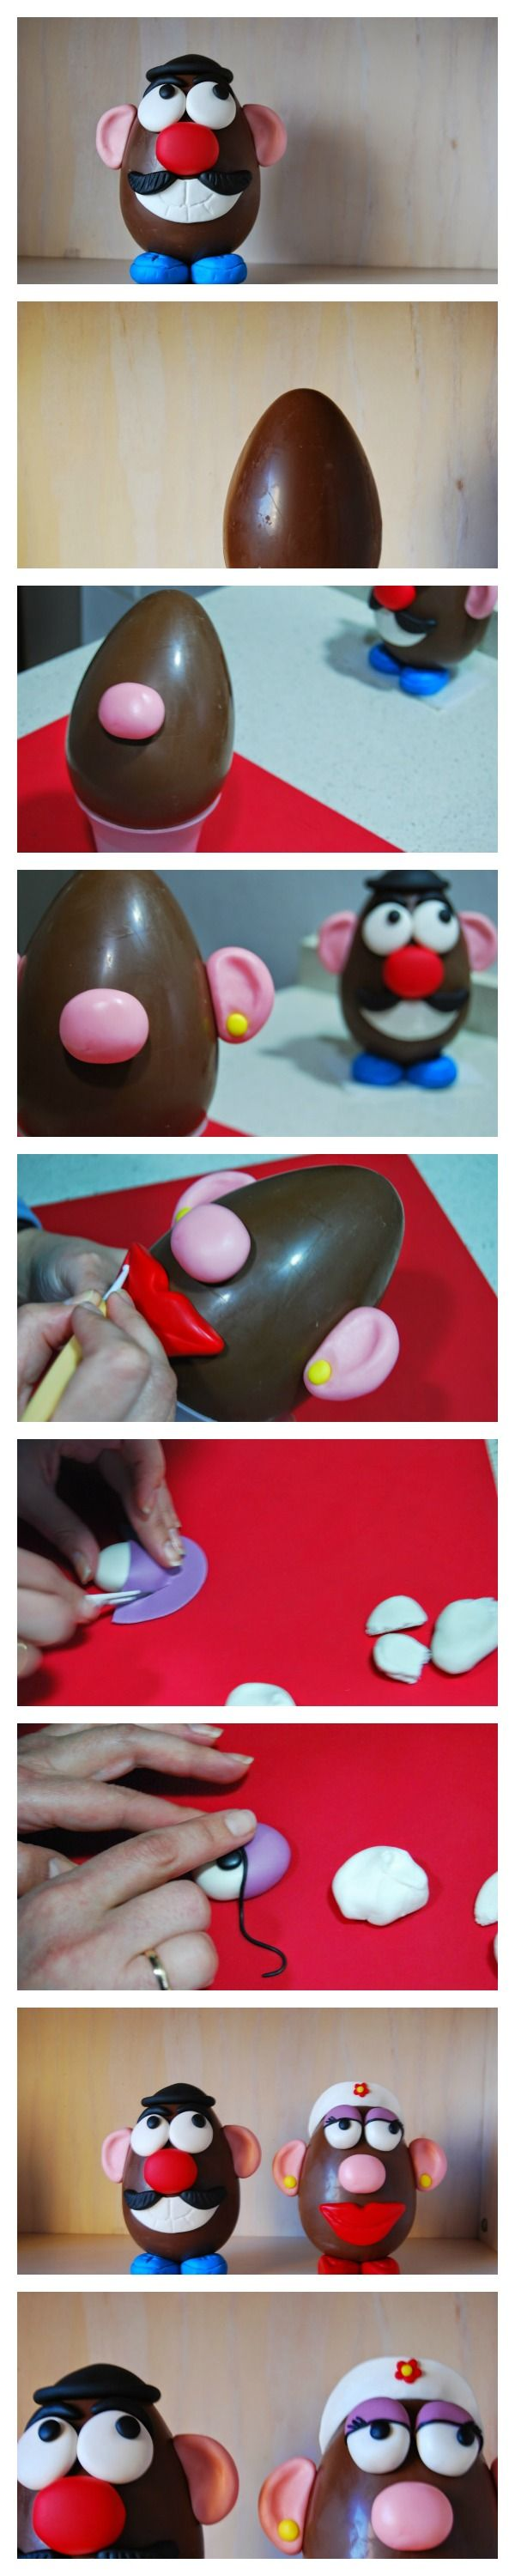 Best Mr. Potato head chocolate egg tutorial ever!! perfect for easter present. El mejor tutorial de Mr. Potato huevo de chocolate y fondant. Perfecto para regalar en pascua!!